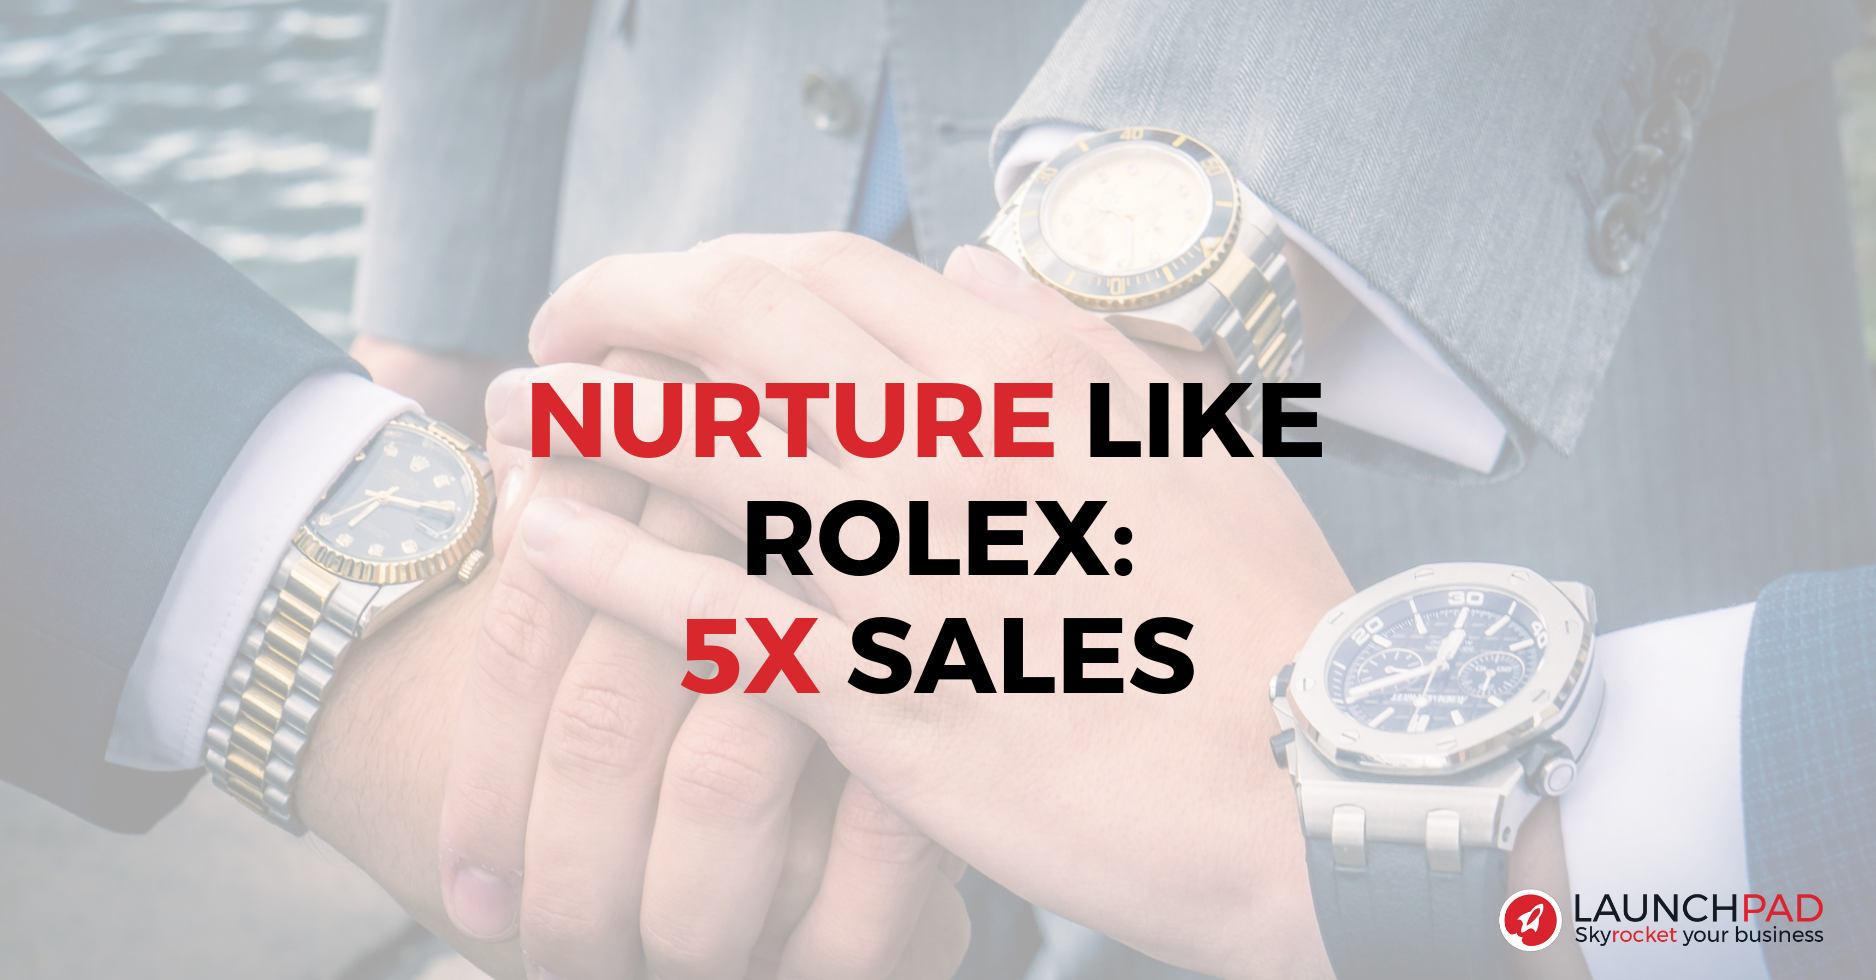 Nurture Like Rolex 5x Sales